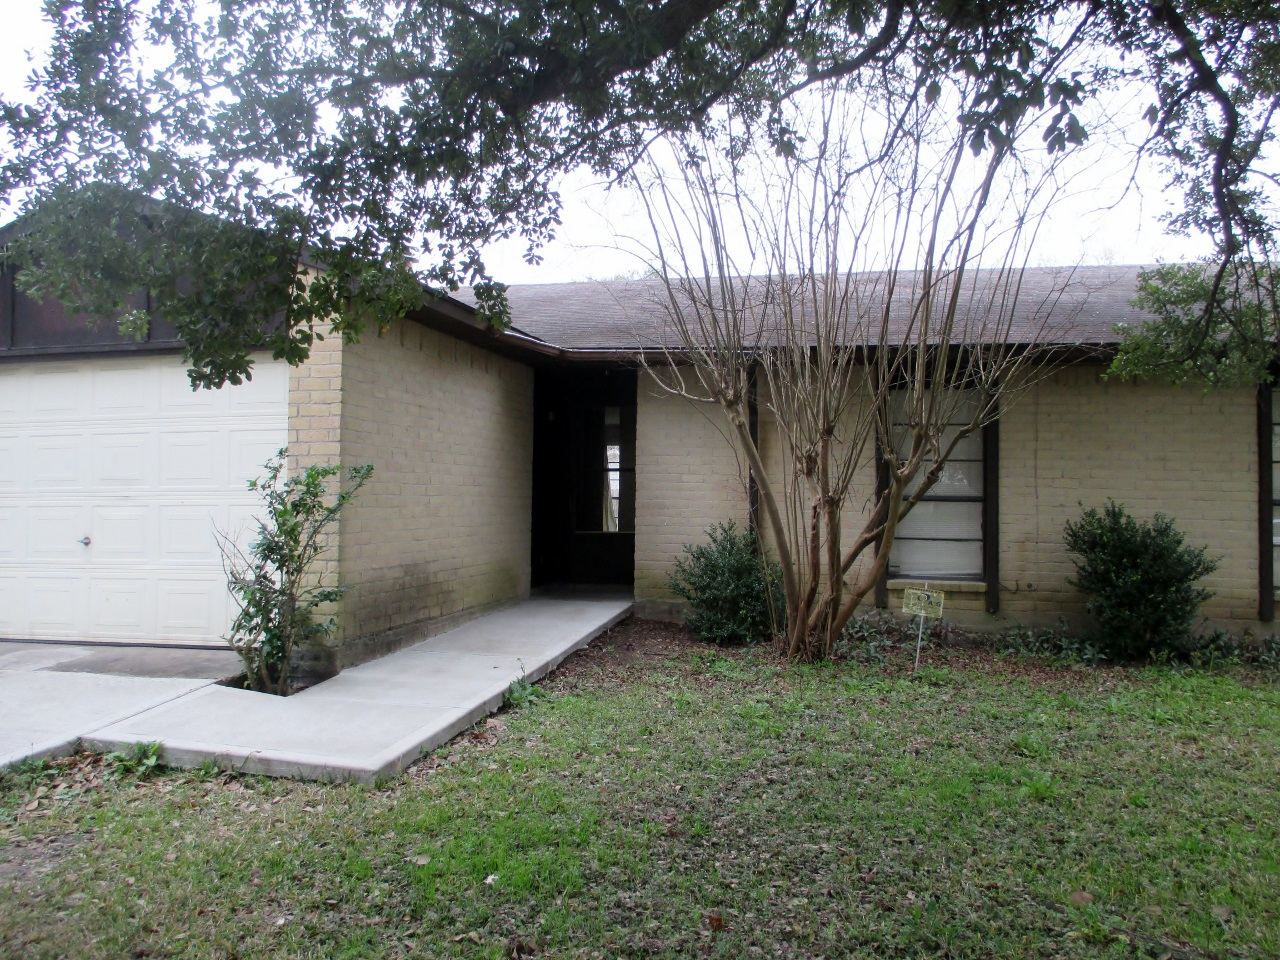 Investors check out this vacant and ready to go Houston investment property in Galena Park! 3/2/1 for $60,000 with only cosmetic updates needed!